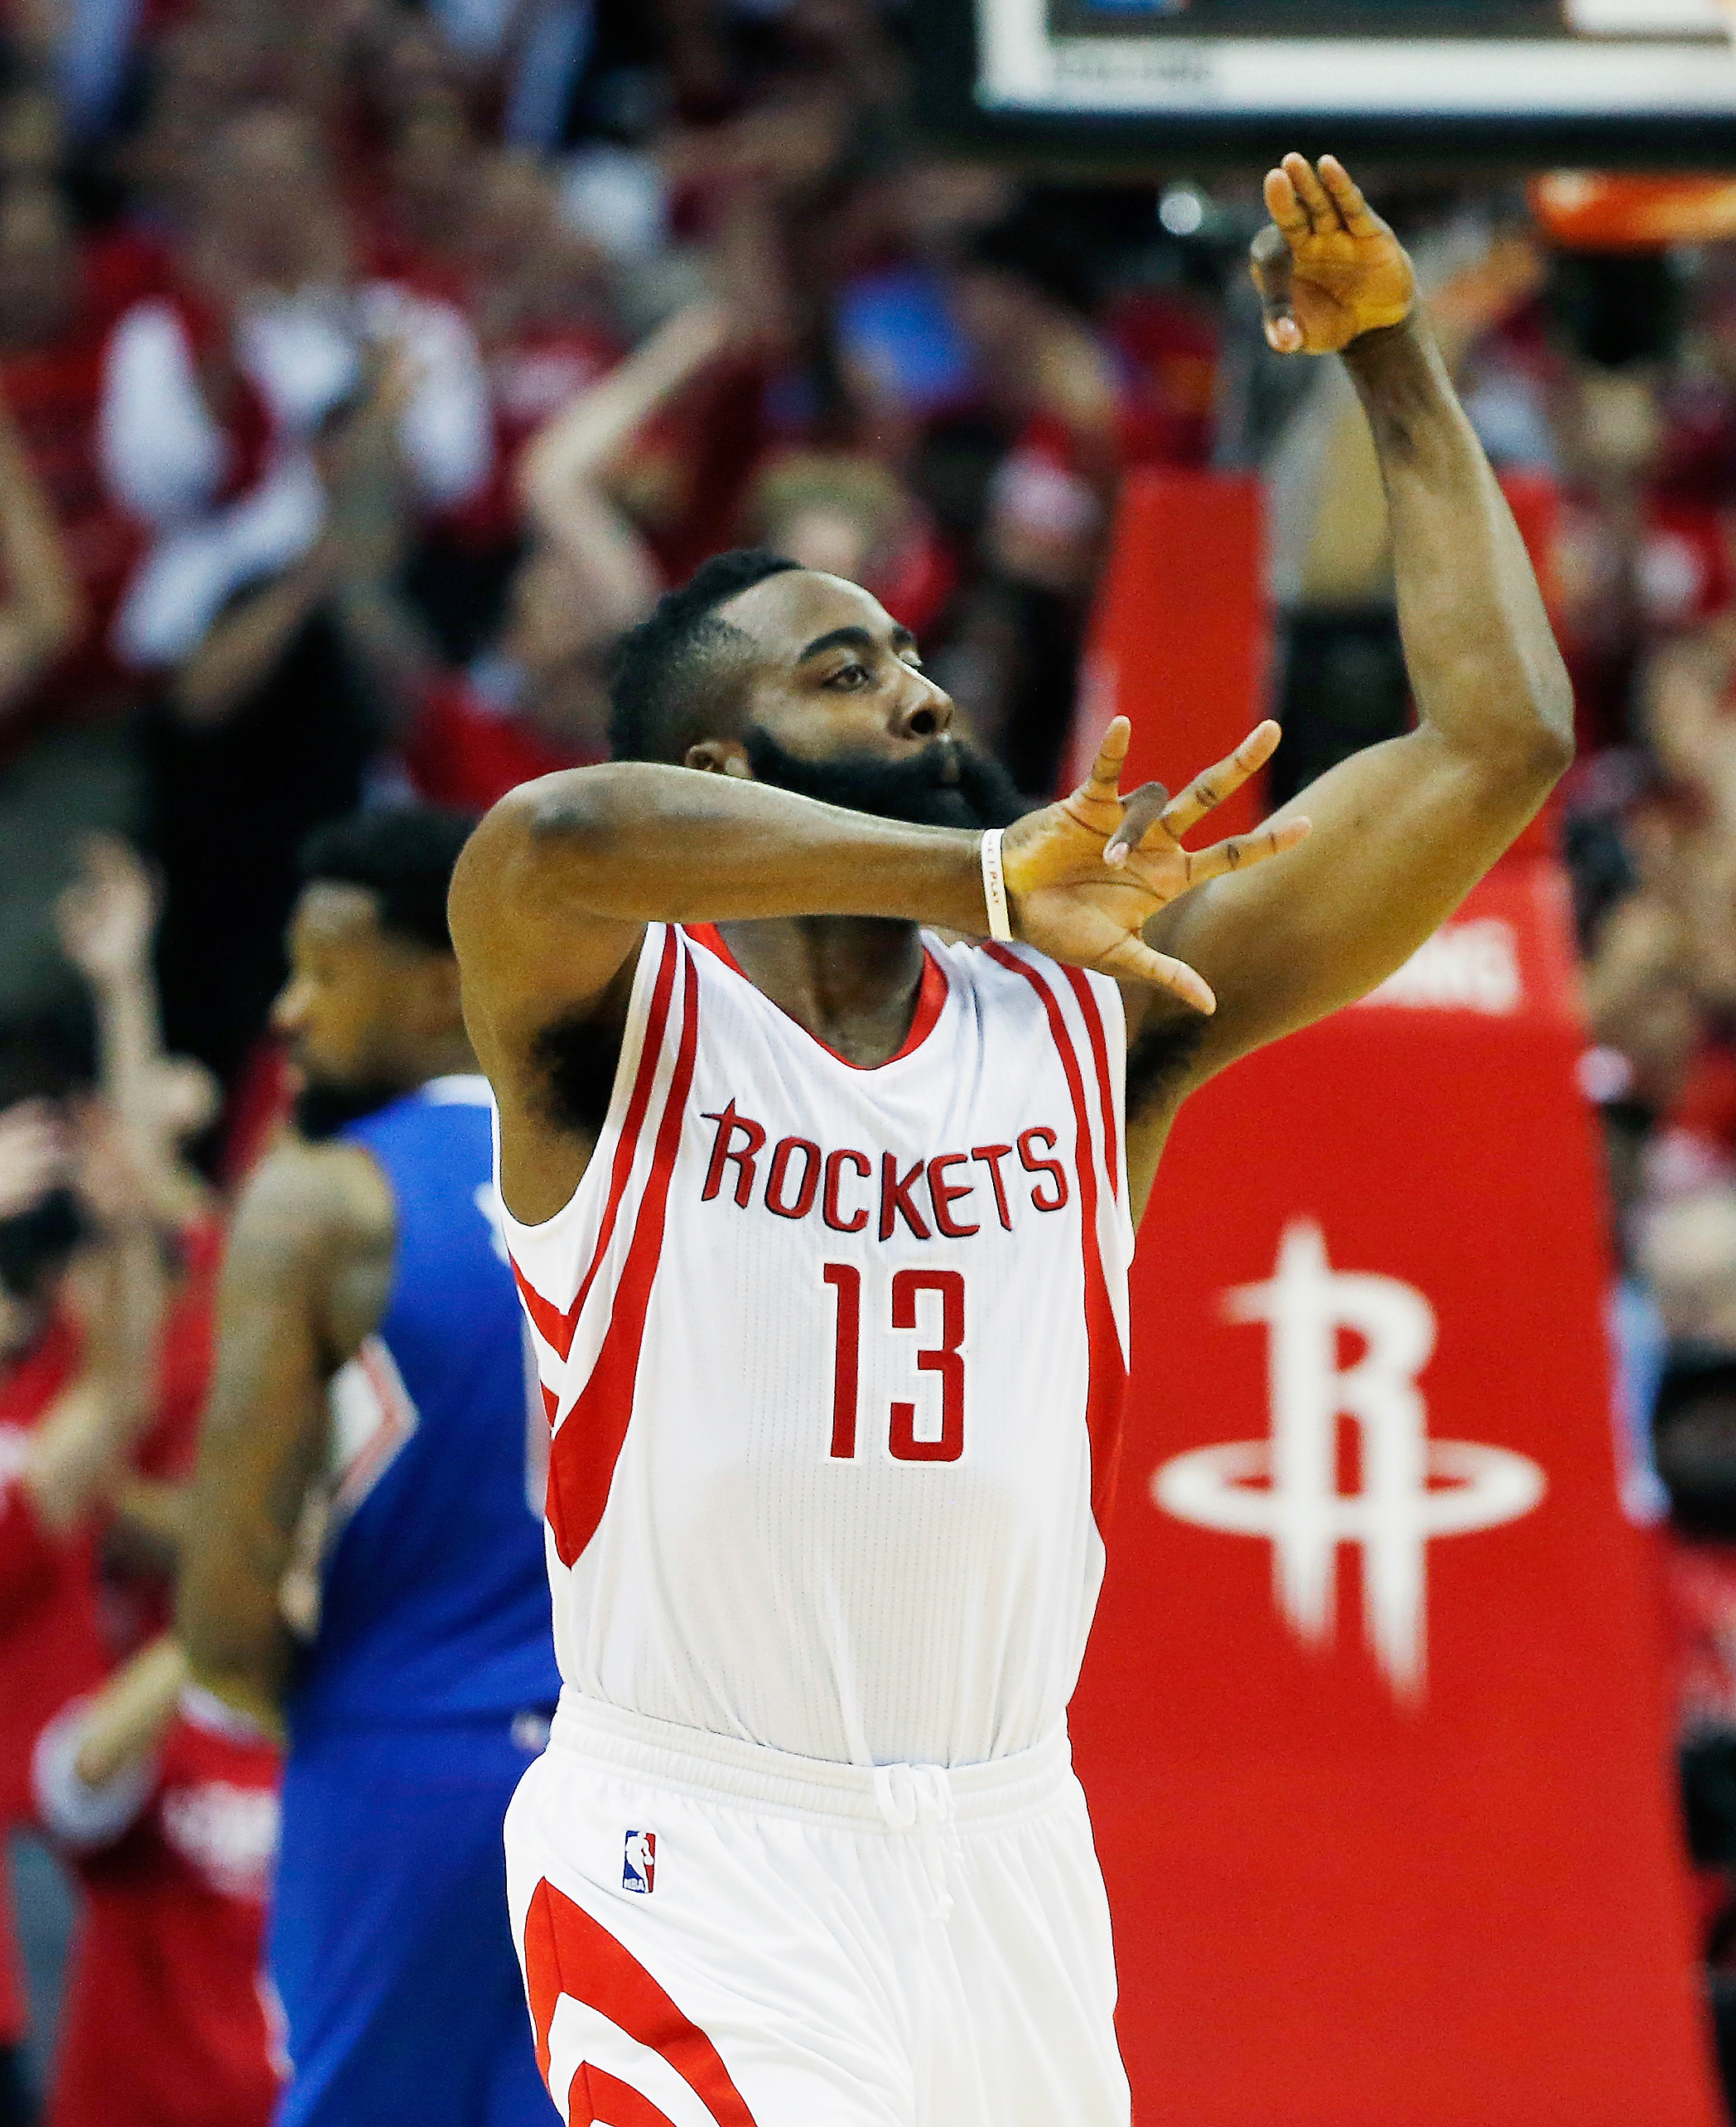 HOUSTON, TX - MAY 06:  James Harden #13 of the Houston Rockets celebrates a three point shot late in the second half against the Los Angeles Clippers during Game Two in the Western Conference Semifinals of the 2015 NBA Playoffs on May 6, 2015 at the Toyot